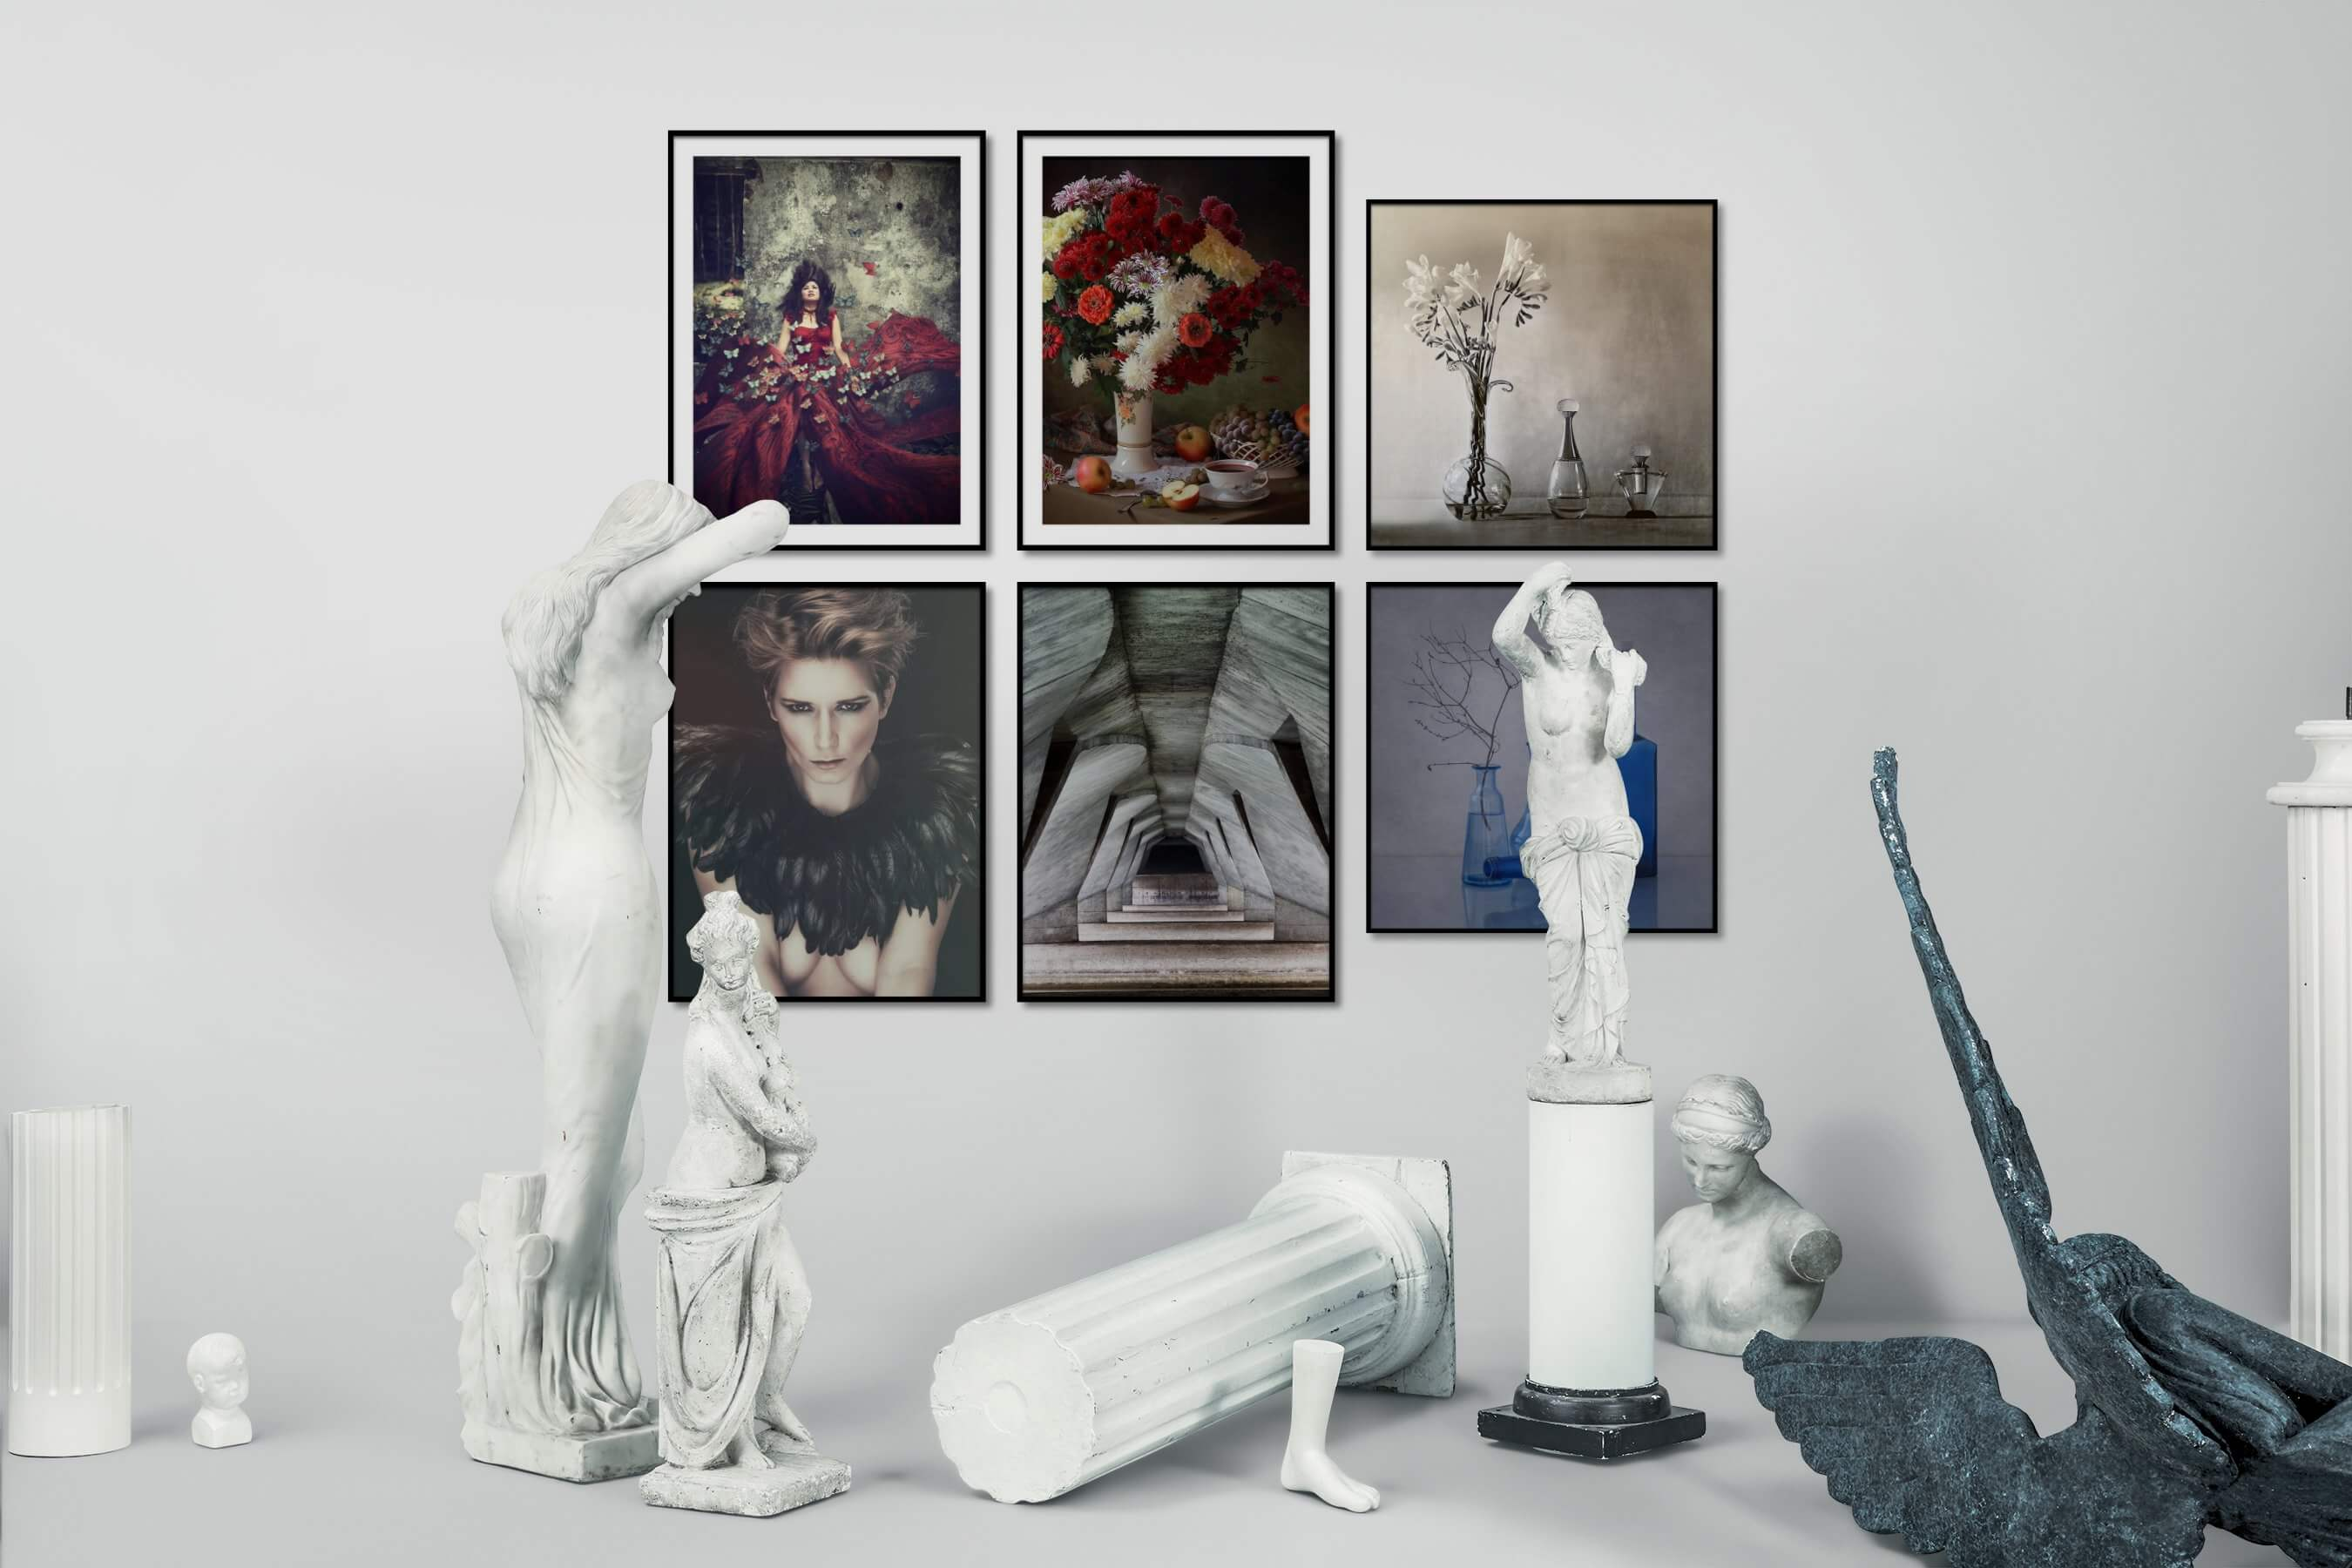 Gallery wall idea with six framed pictures arranged on a wall depicting Fashion & Beauty, Flowers & Plants, Vintage, For the Maximalist, and For the Moderate